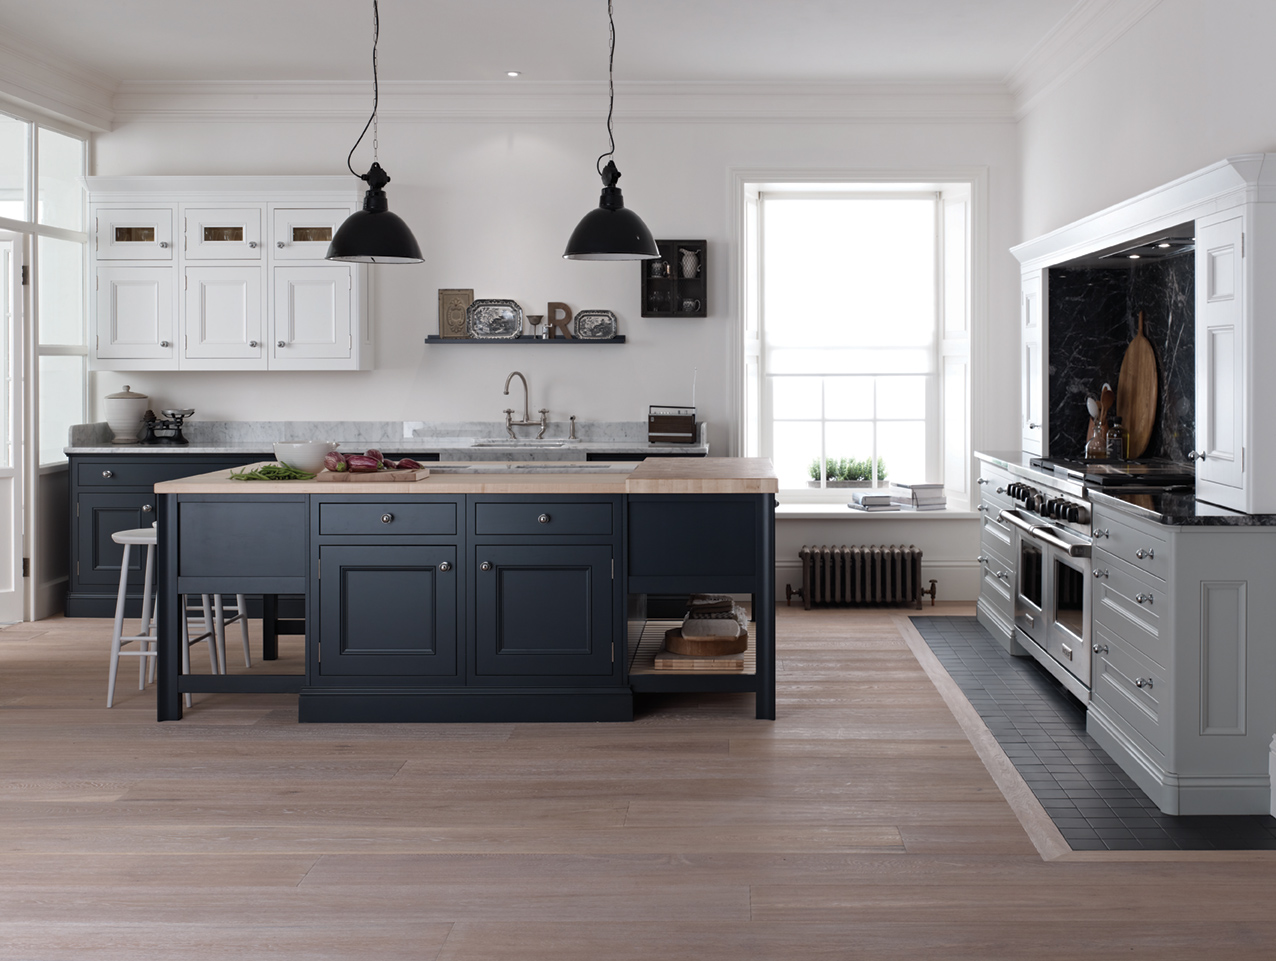 Completion - We'll keep everything on track, so that your kitchen is completed as quickly and unobtrusively as possible, and to the highest standards. And if there's anything at all that doesn't meet with your expectations, we'll take care of it as part of our comprehensive after-care service.